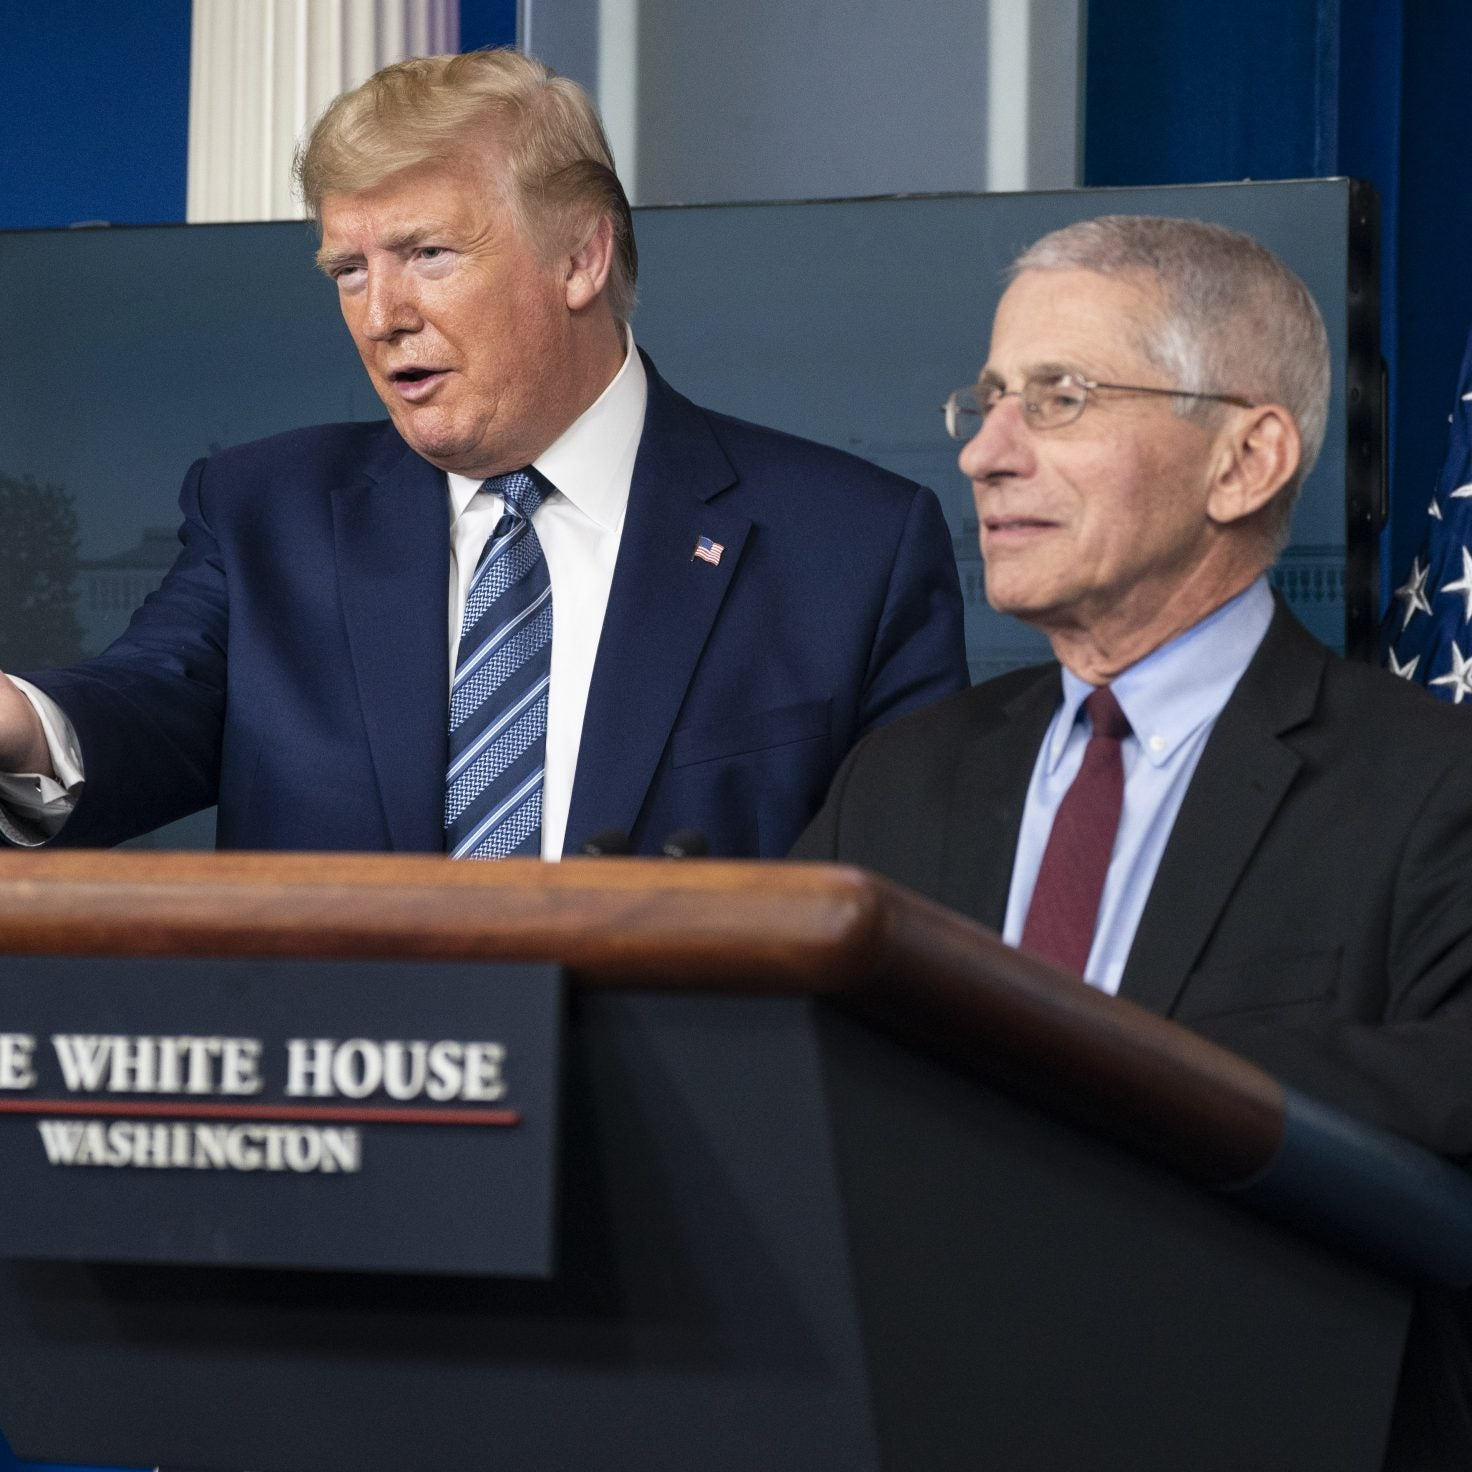 Trump, Fauci Continue To Give Conflicting Statements On Reopening Economy